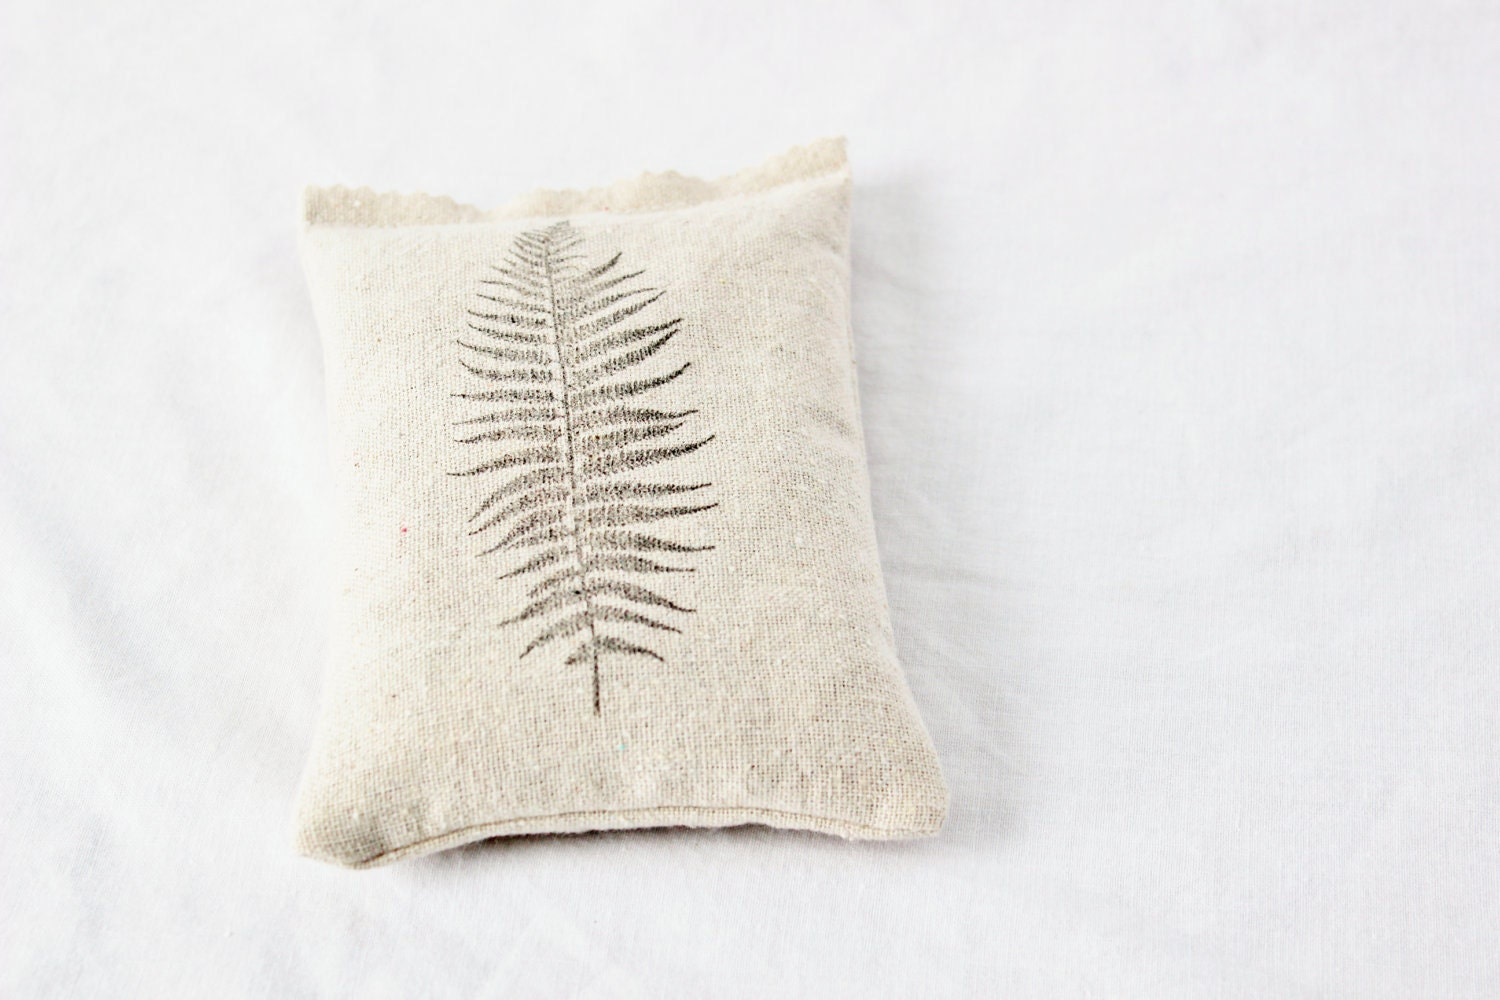 Aromatic Botanical Sachet Fern Frond Minimal Natural Home Decor - Gardenmis